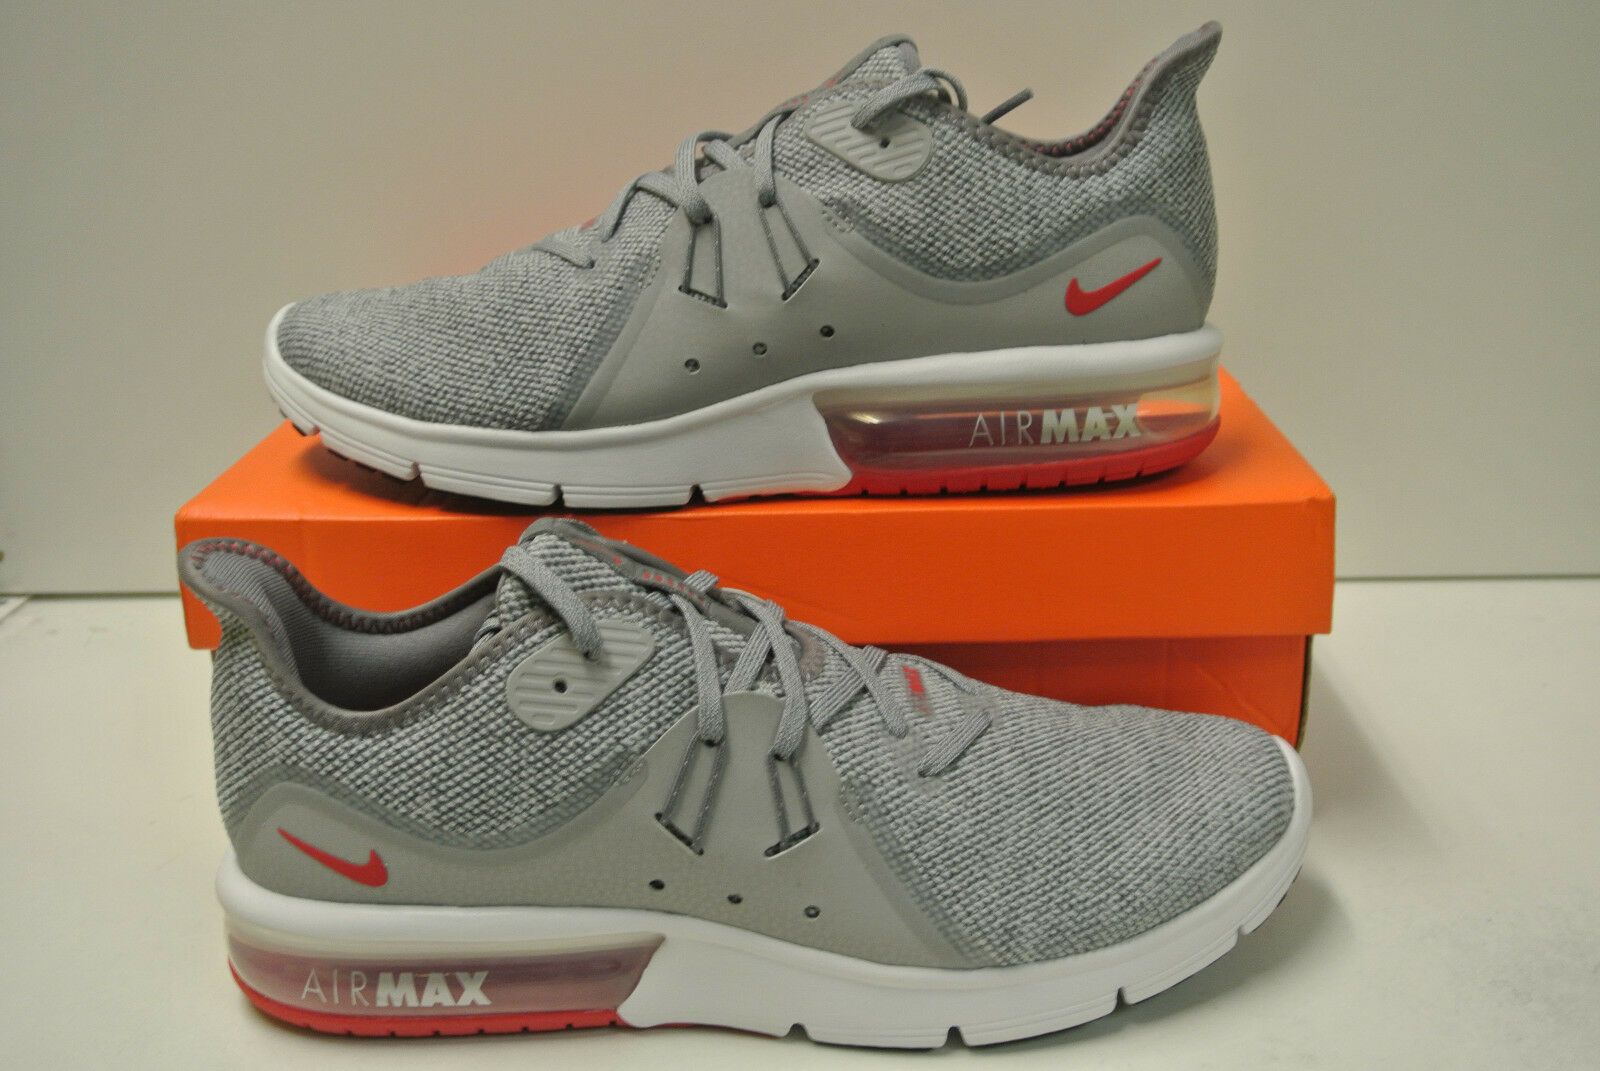 NIKE AIR MAX SEQUENT 3 chaussures hommes sport loisir basket gris 921694 015